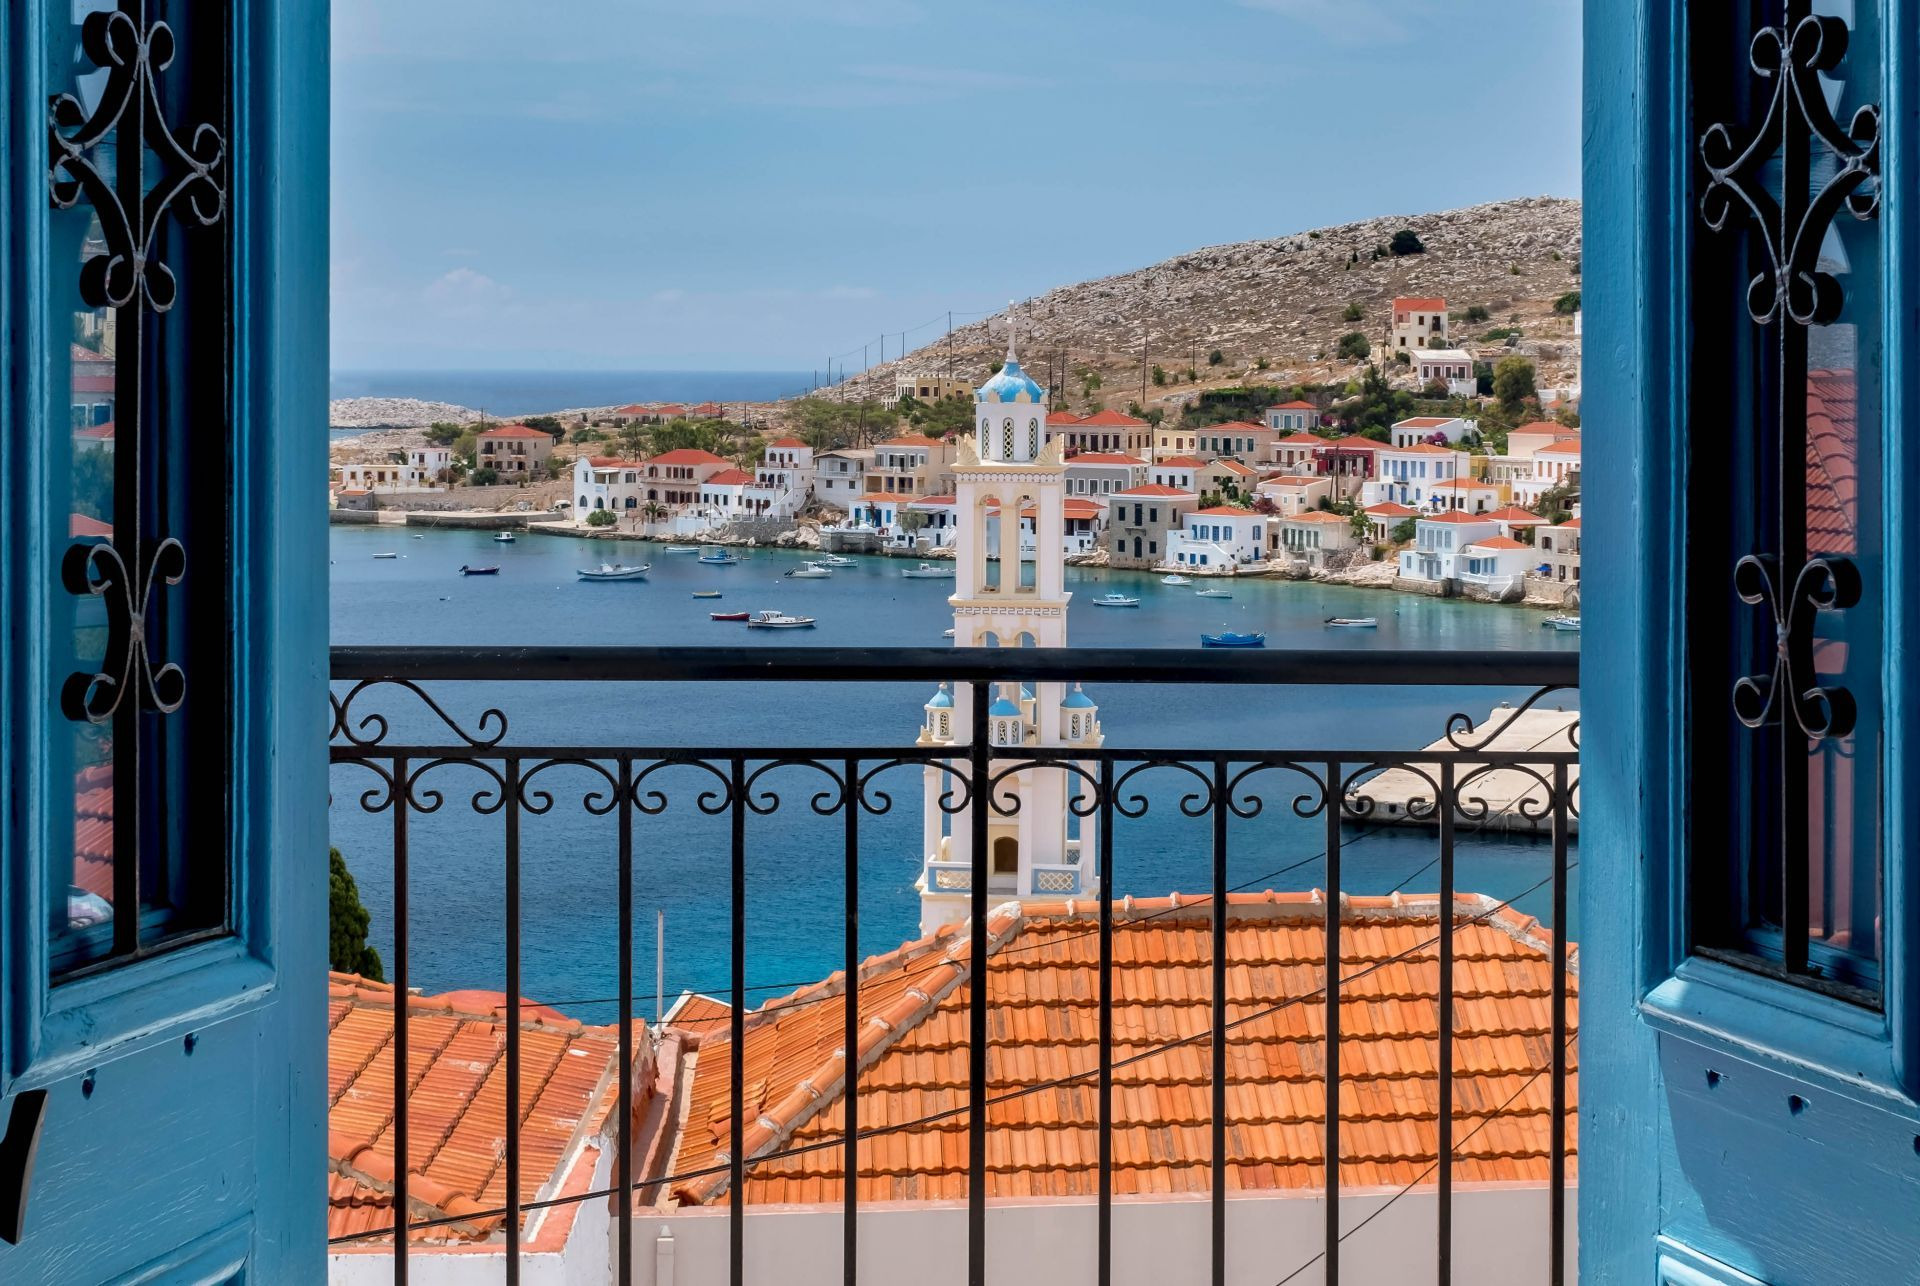 Accommodation and hotels in Halki